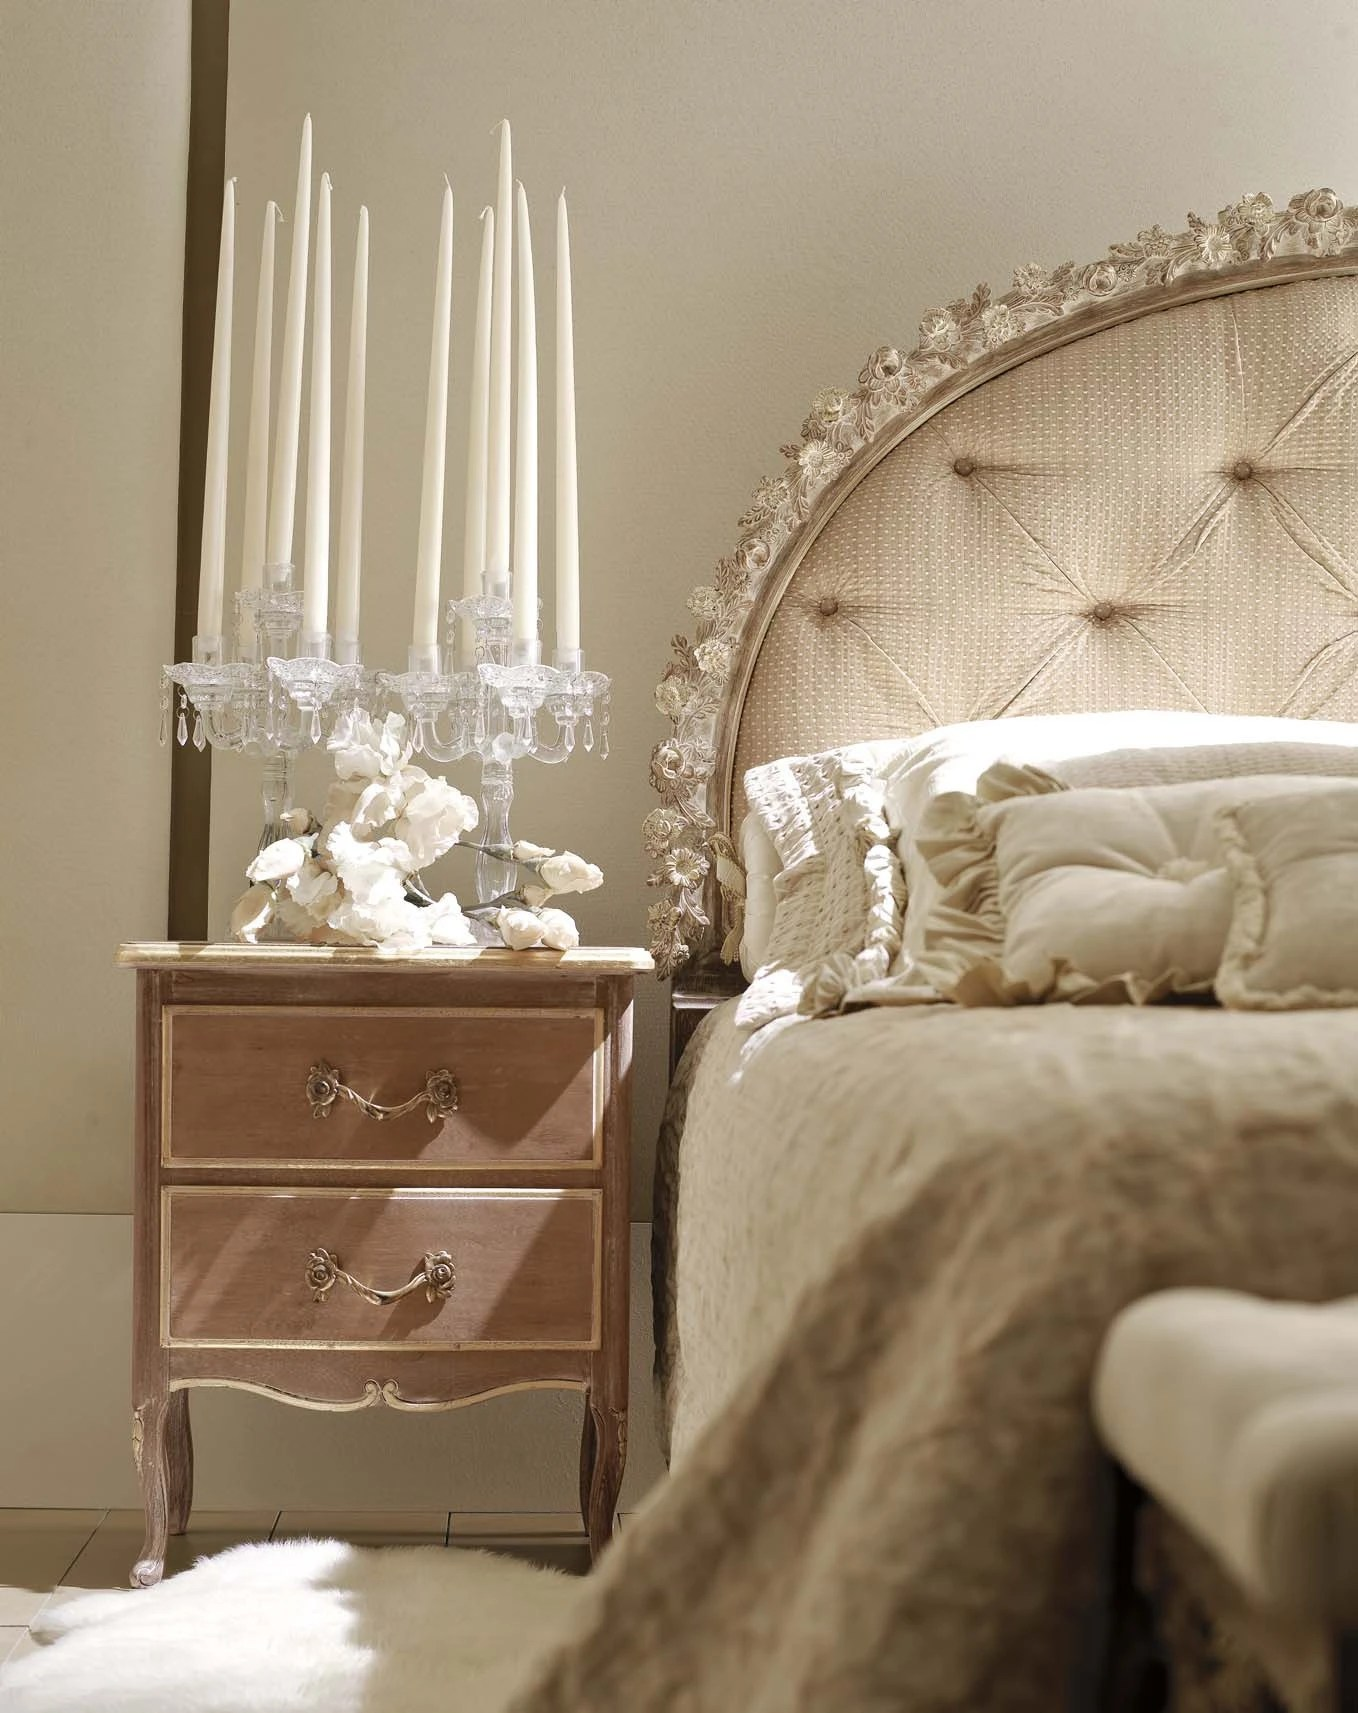 Double Bed With Upholstered Headboard Is Semi Circular In